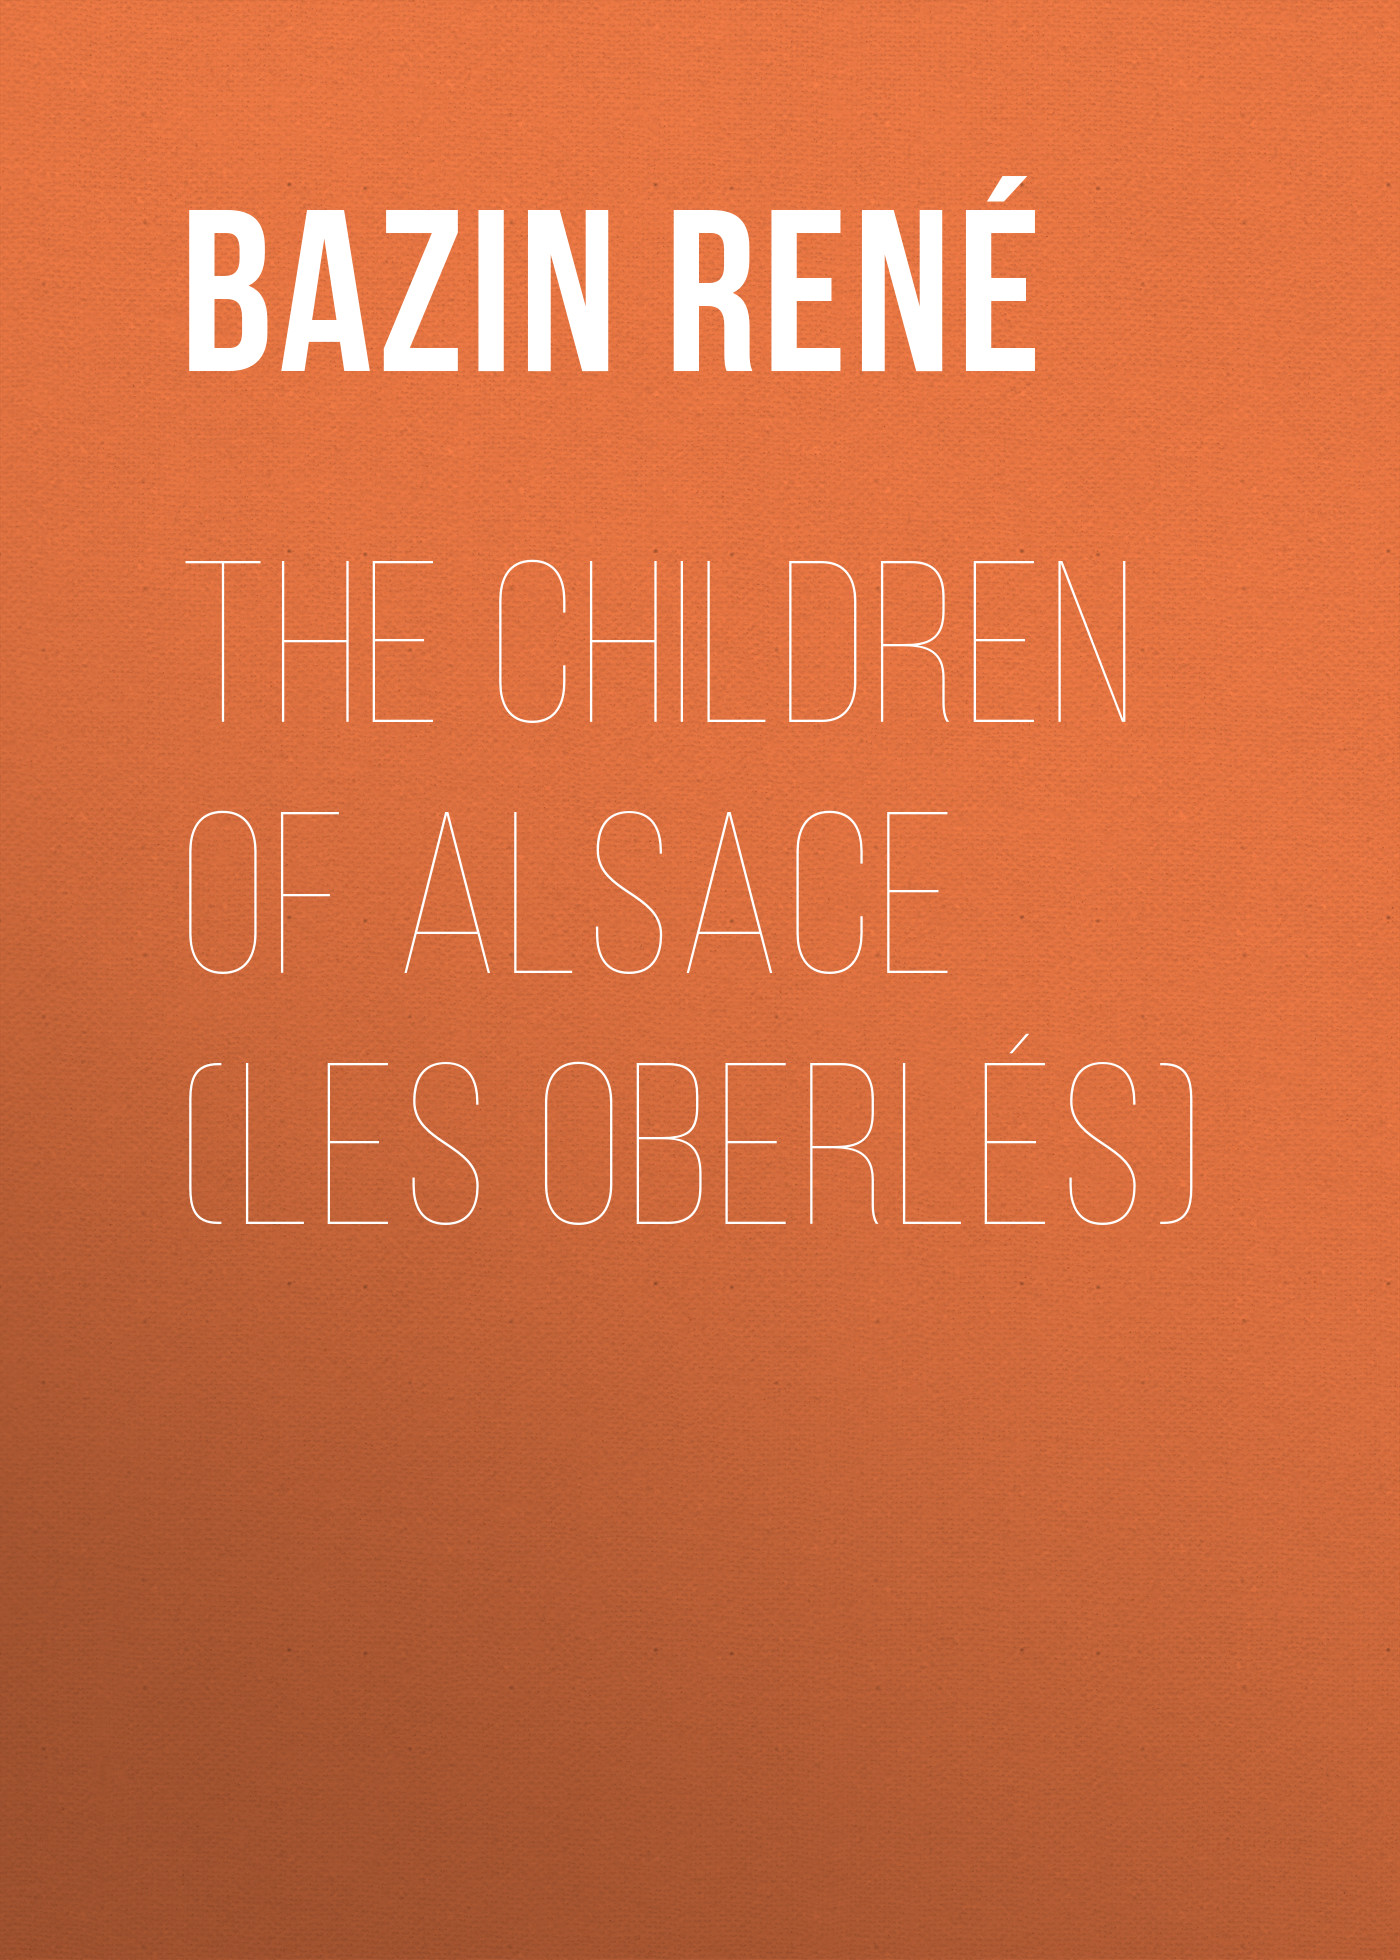 Bazin René The Children of Alsace (Les Oberlés) bazin rené the children of alsace les oberlés